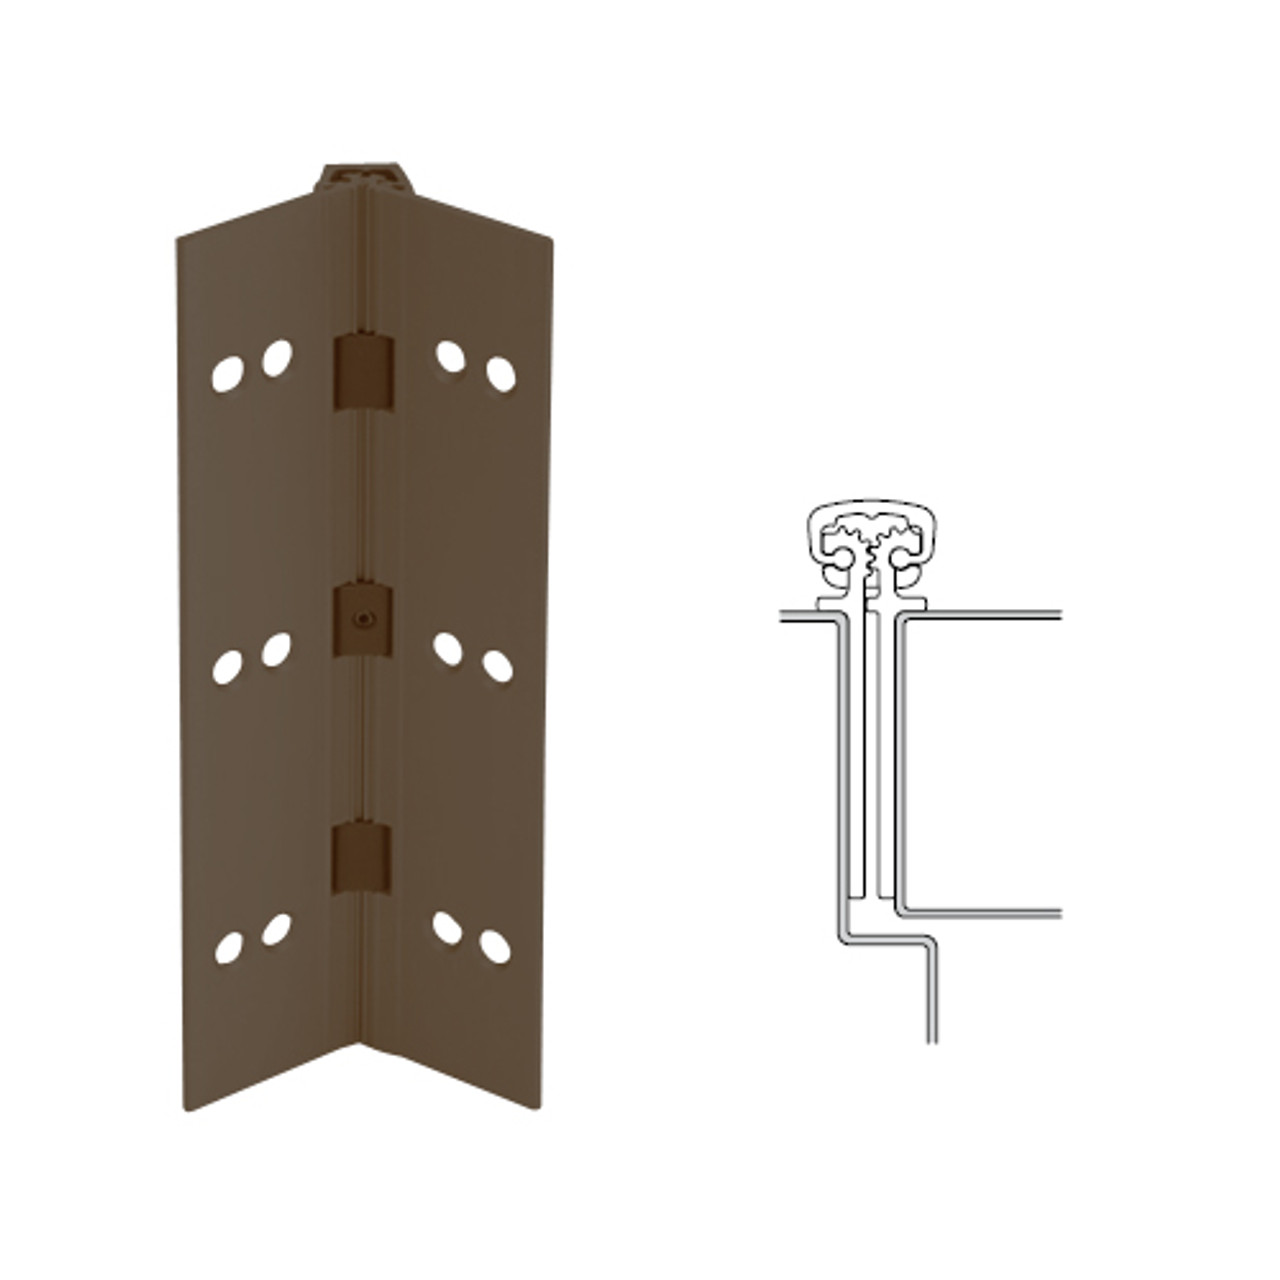 027XY-313AN-95-SECWDHM IVES Full Mortise Continuous Geared Hinges with Security Screws - Hex Pin Drive in Dark Bronze Anodized